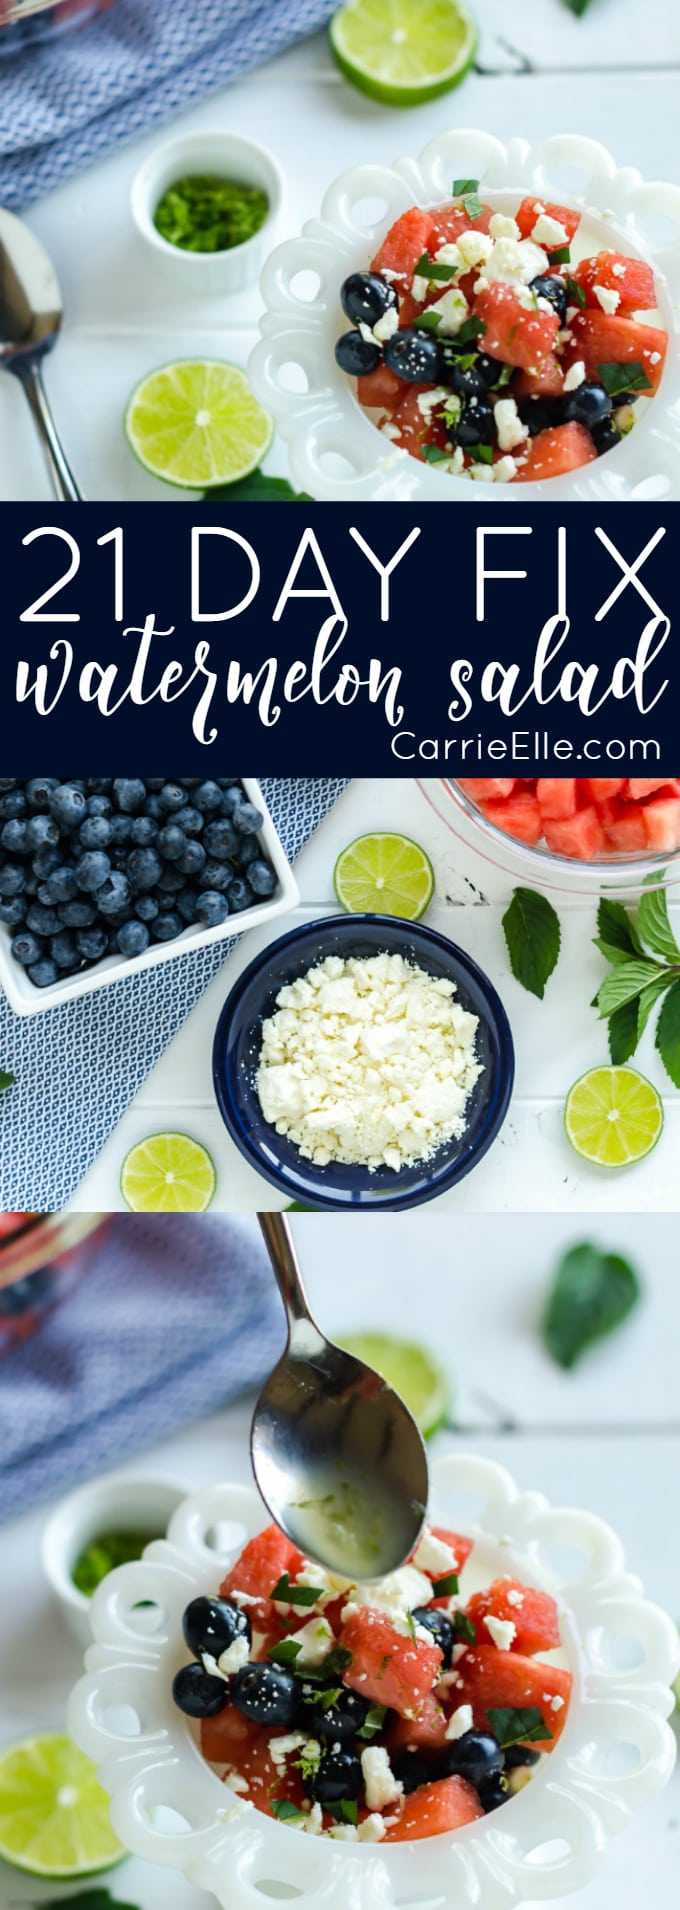 21 Day FIx Watermelon Salad